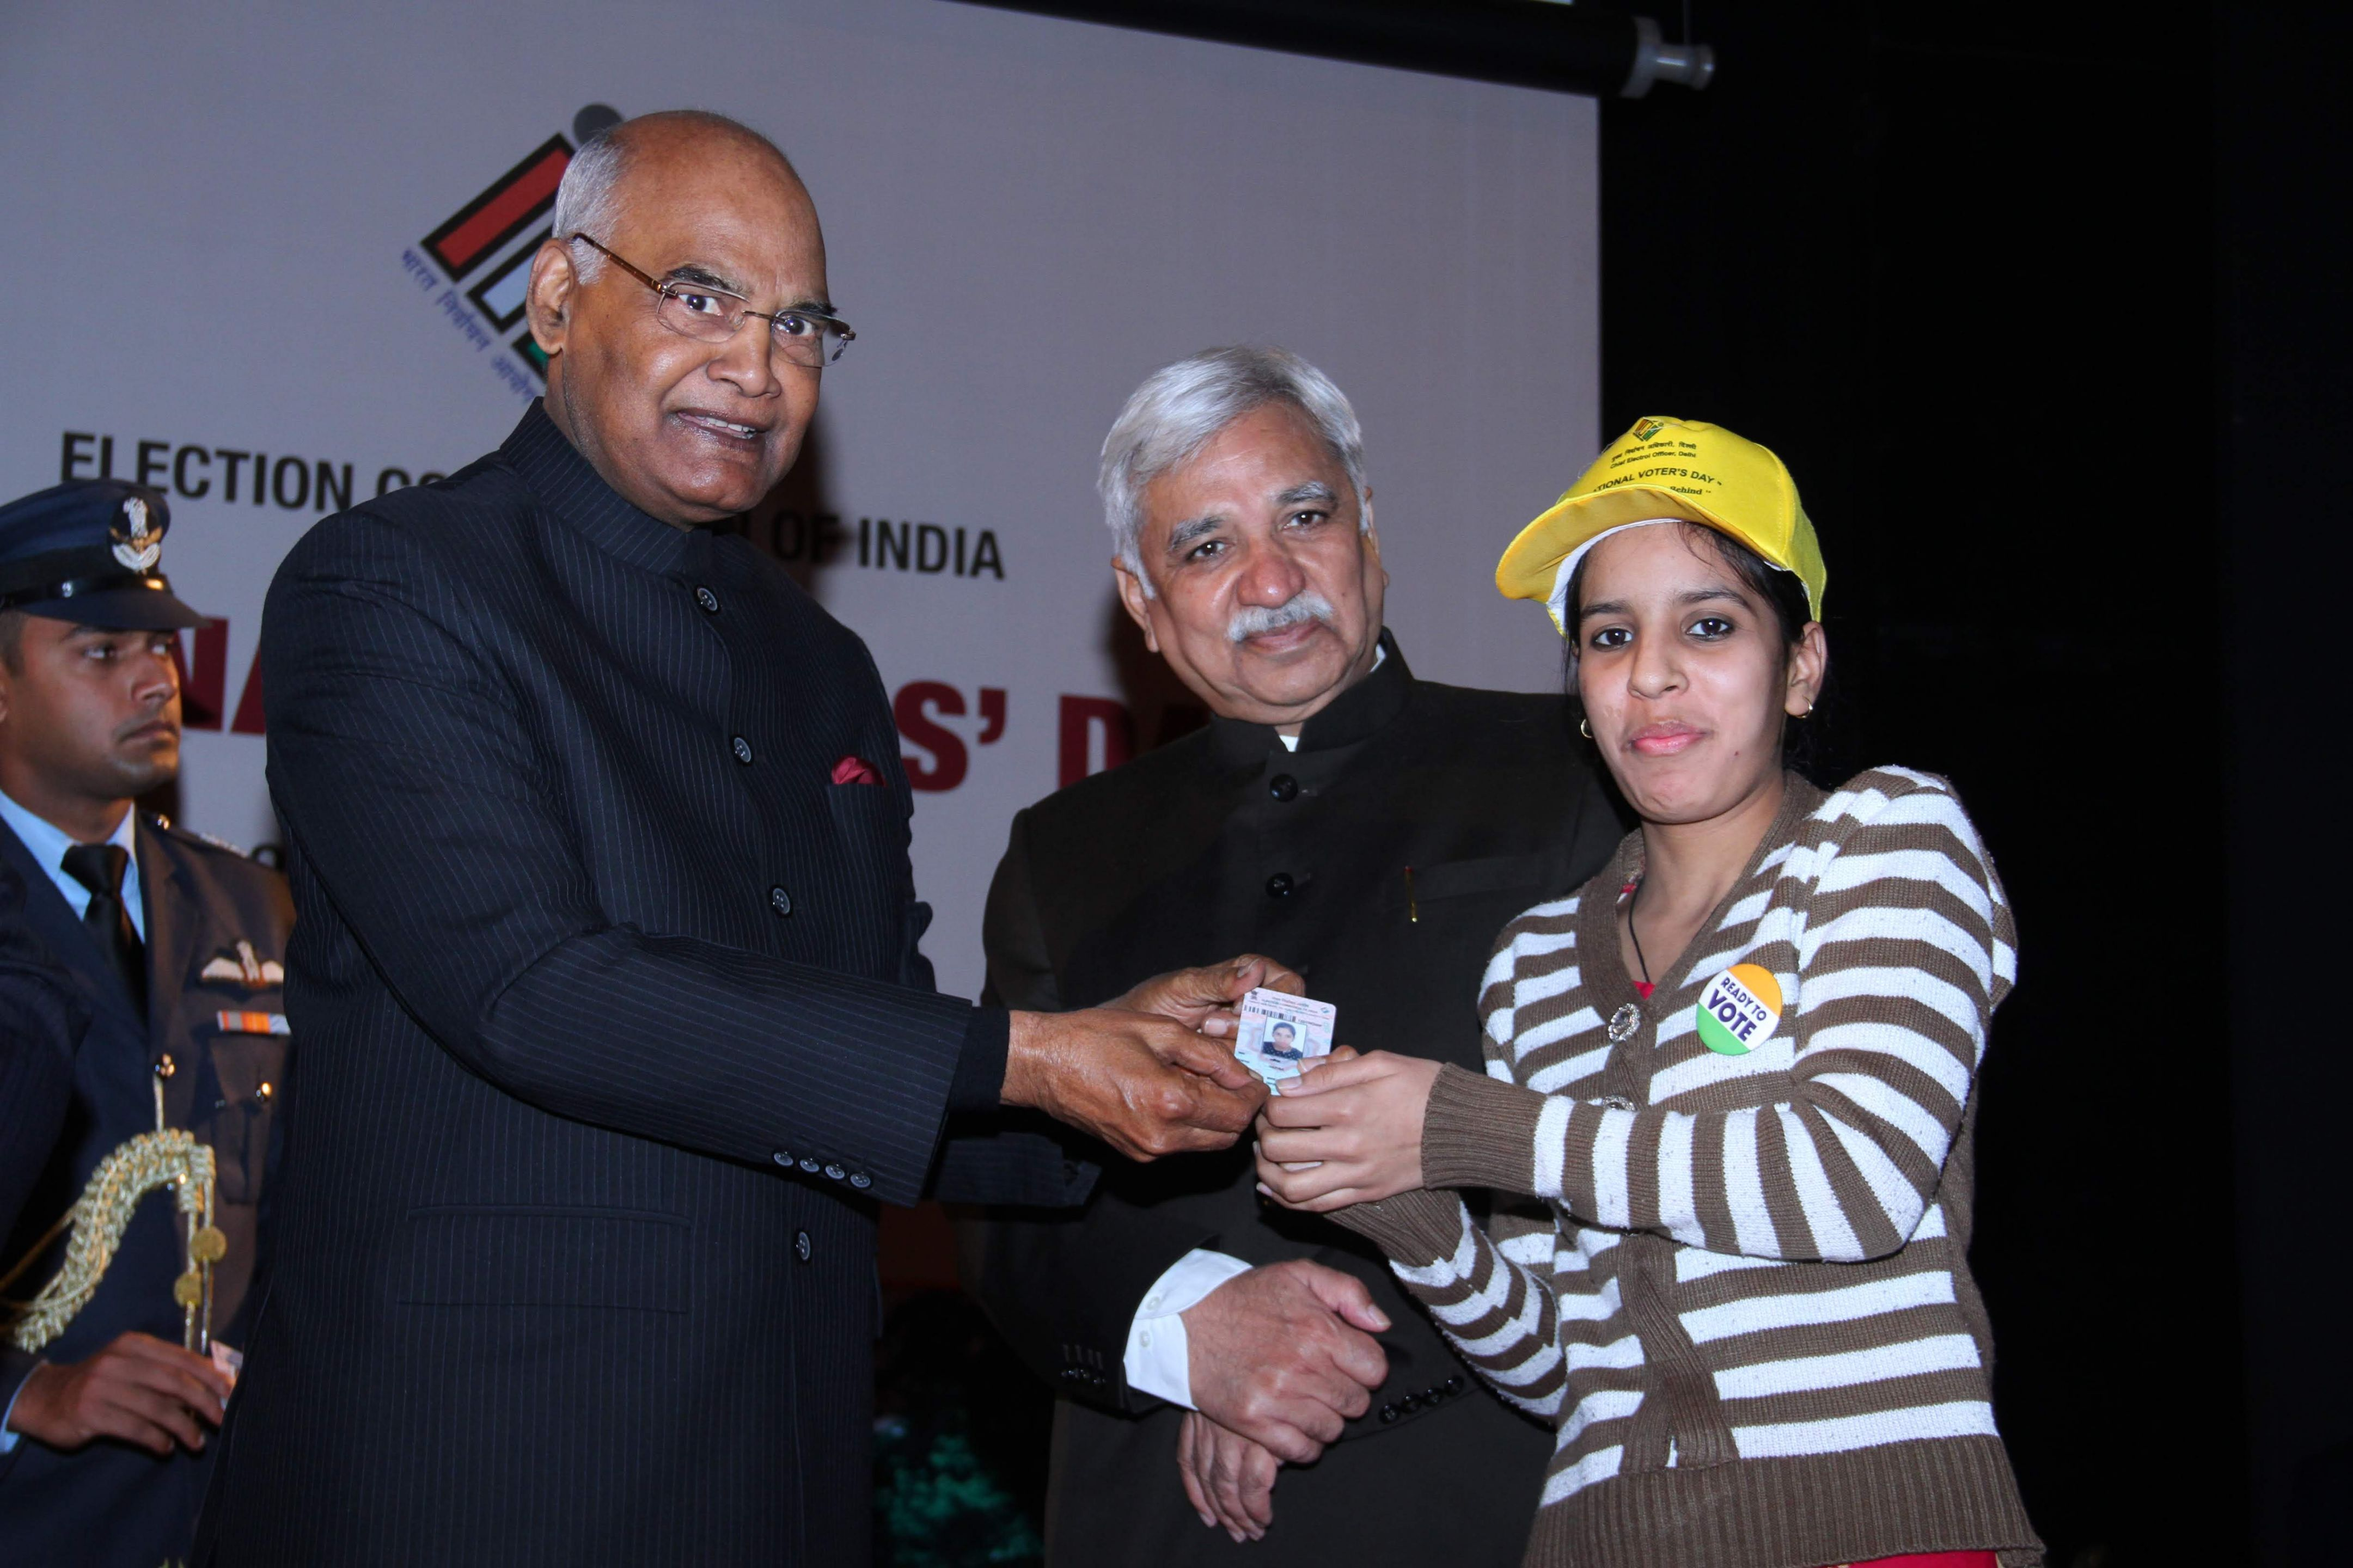 A newly eligible voter receiving her EPIC from the Hon'ble President